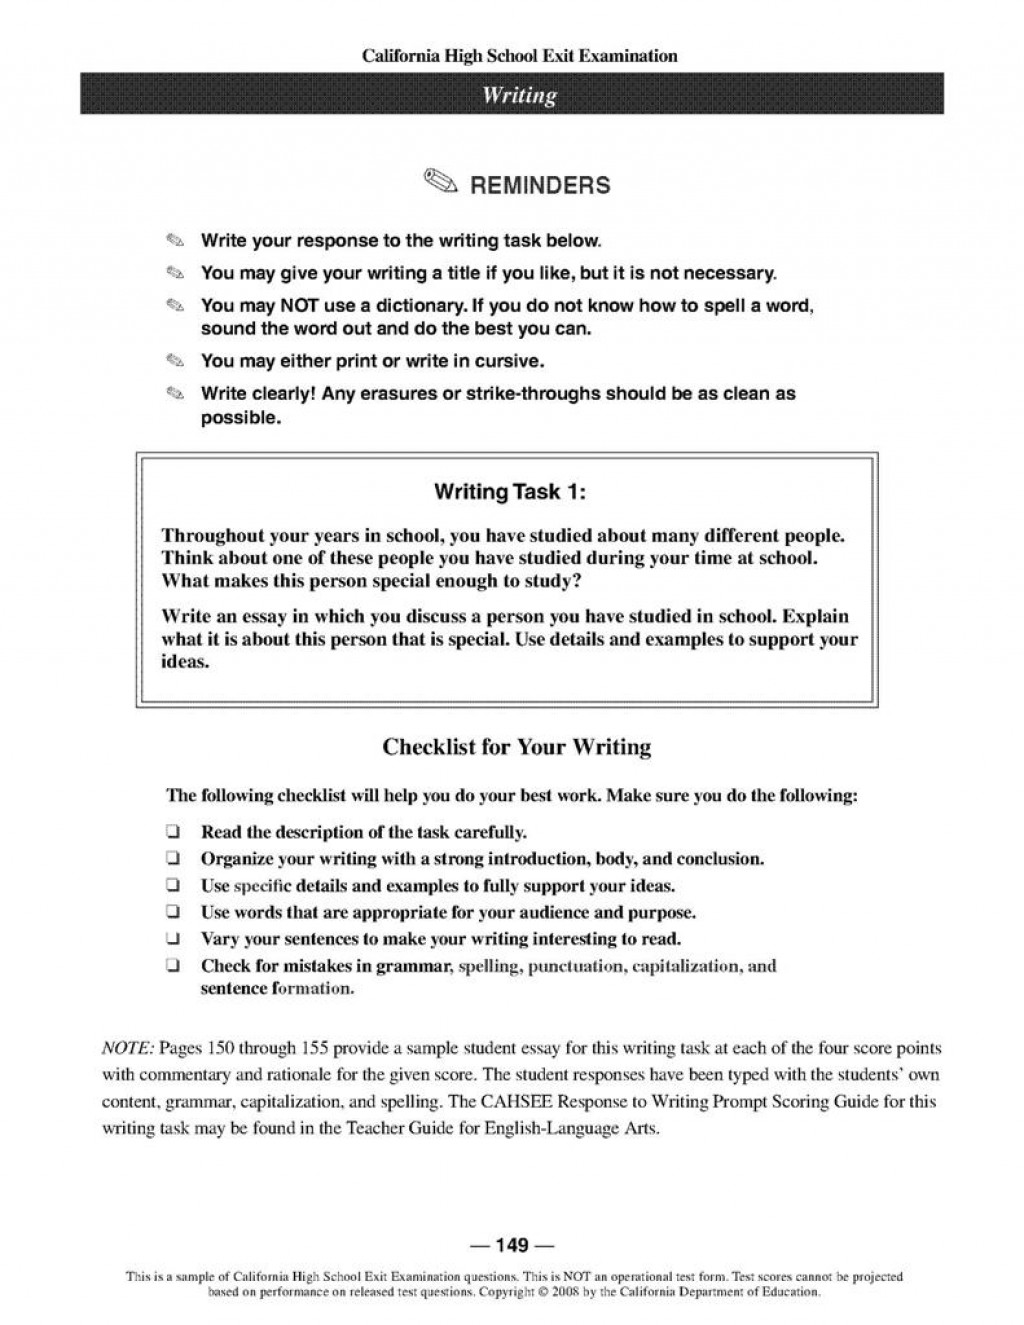 002 Essay Prompt Person Studied Custom Fascinating Writing Generator Fiction Prompts For Middle School Ideas High Large